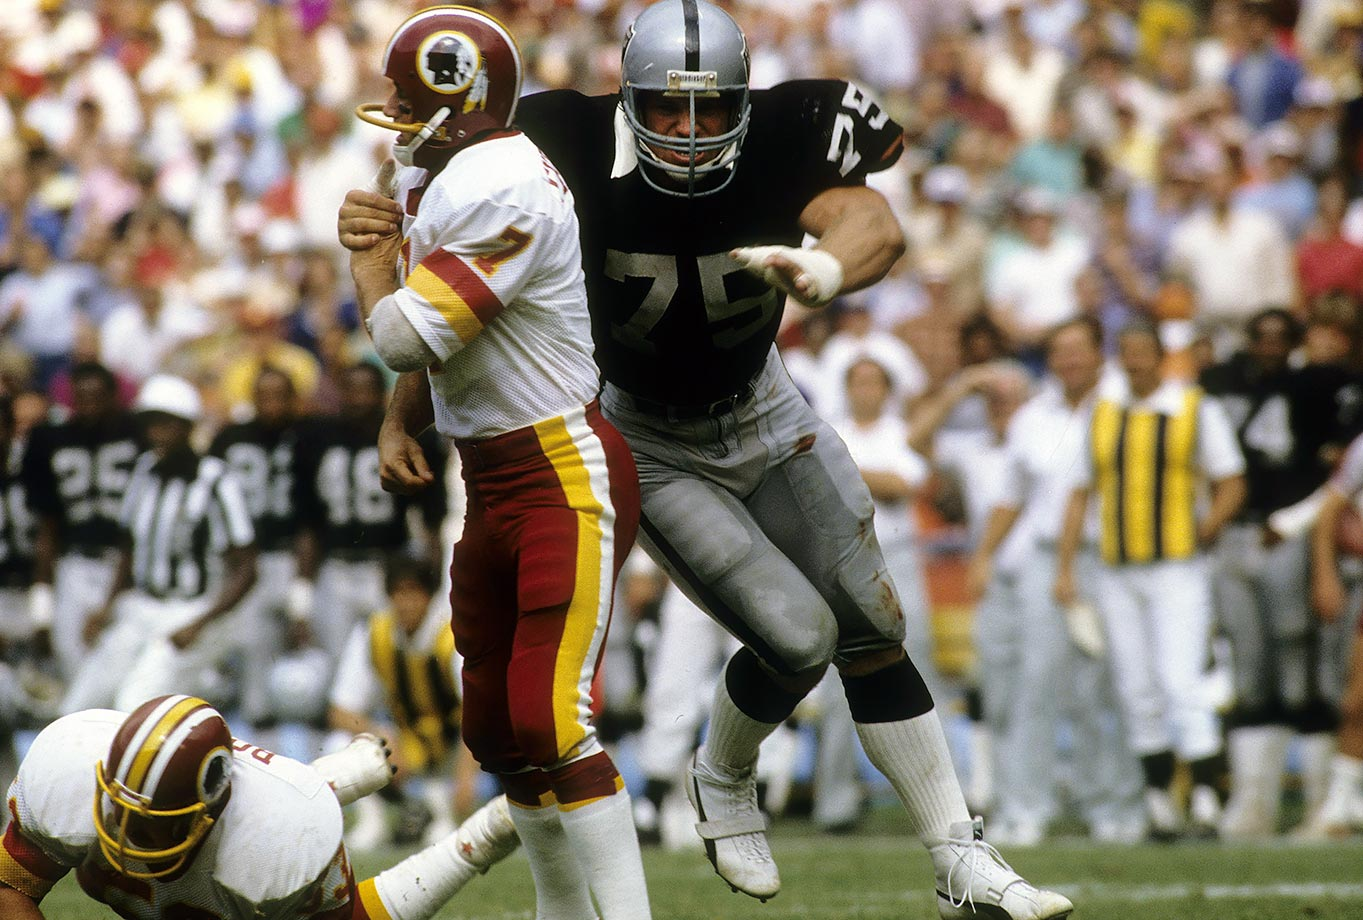 October 2, 1983 — Los Angeles Raiders vs. Washington Redskins